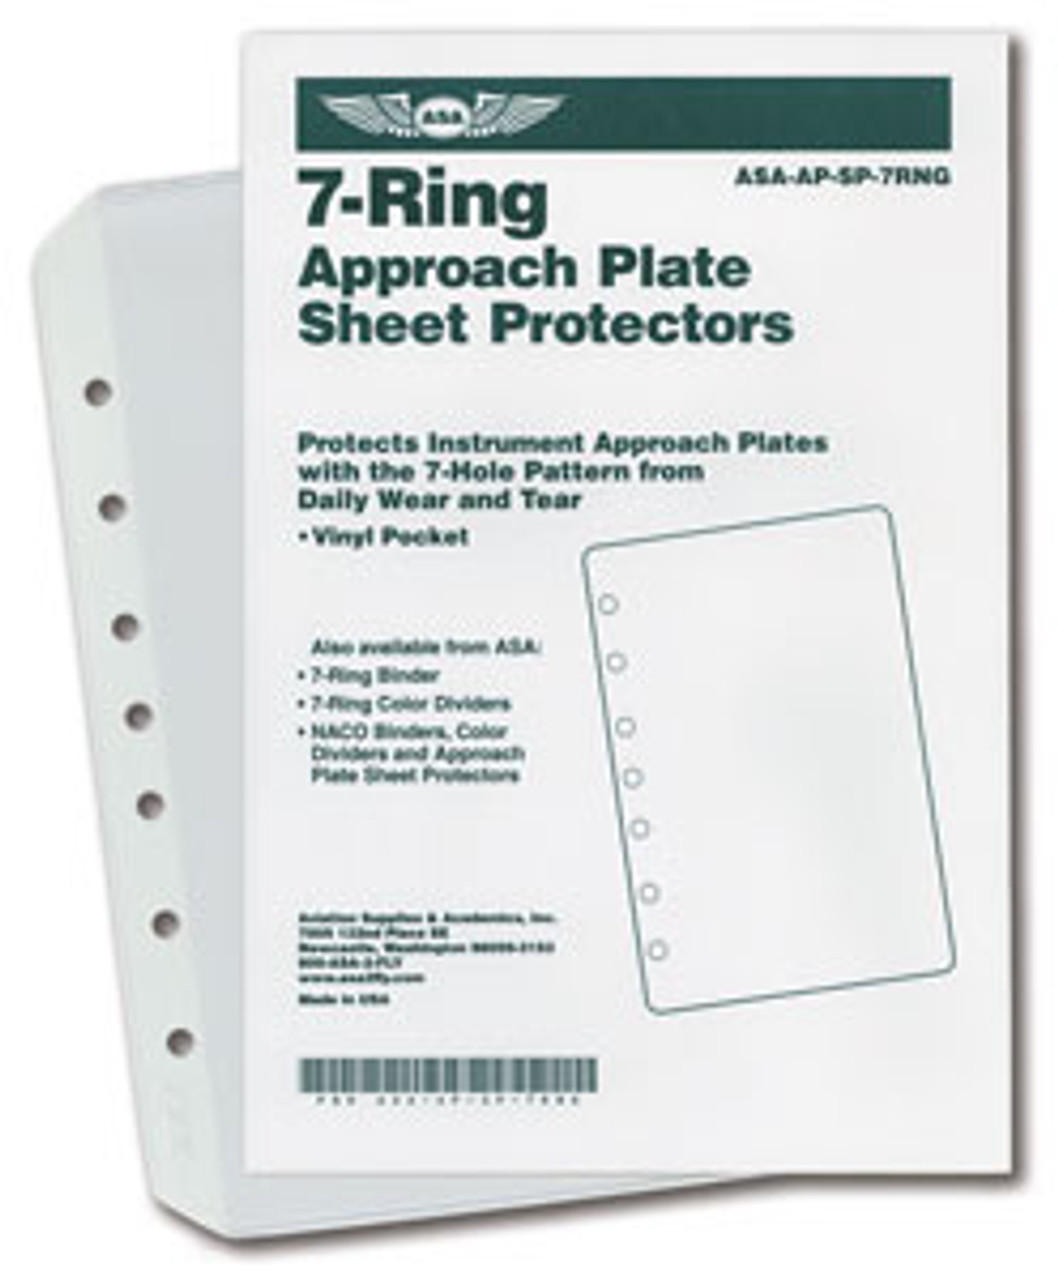 ASA Vinyl Sheet Protector Pockets: 7-Ring